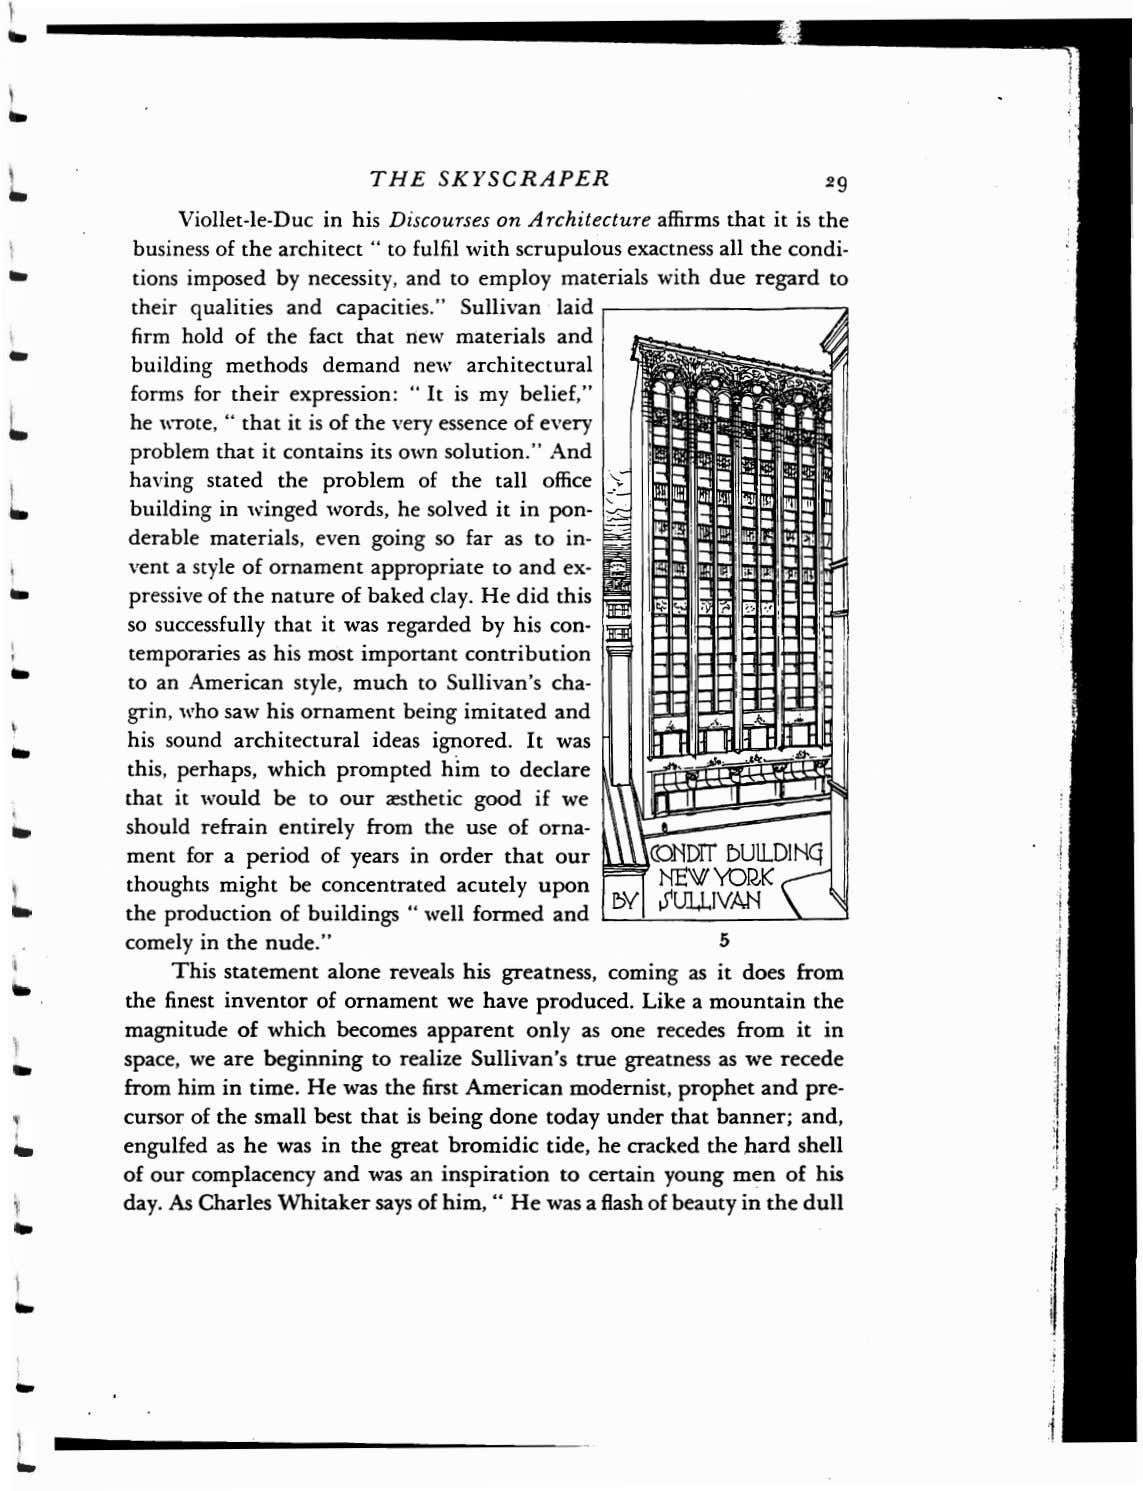 ! THE SKYSCRAPER Viollet-Ie-Duc in his Discourses on A rchitecture affirms that it is the